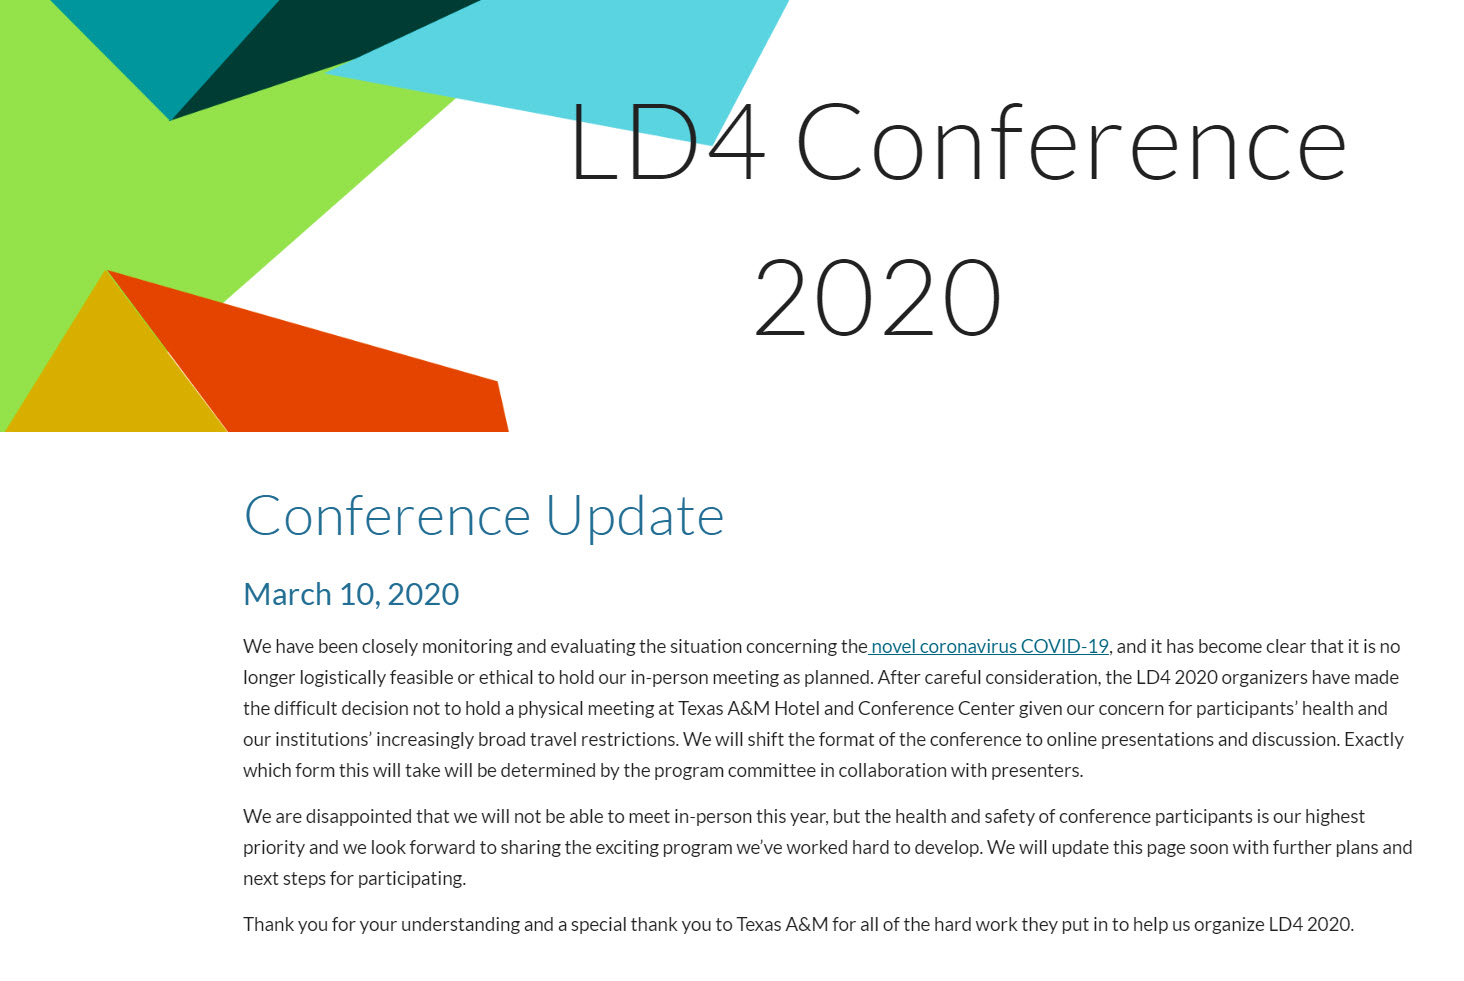 LD4 Conference 2020 (Linked Data in Libraries 2020)